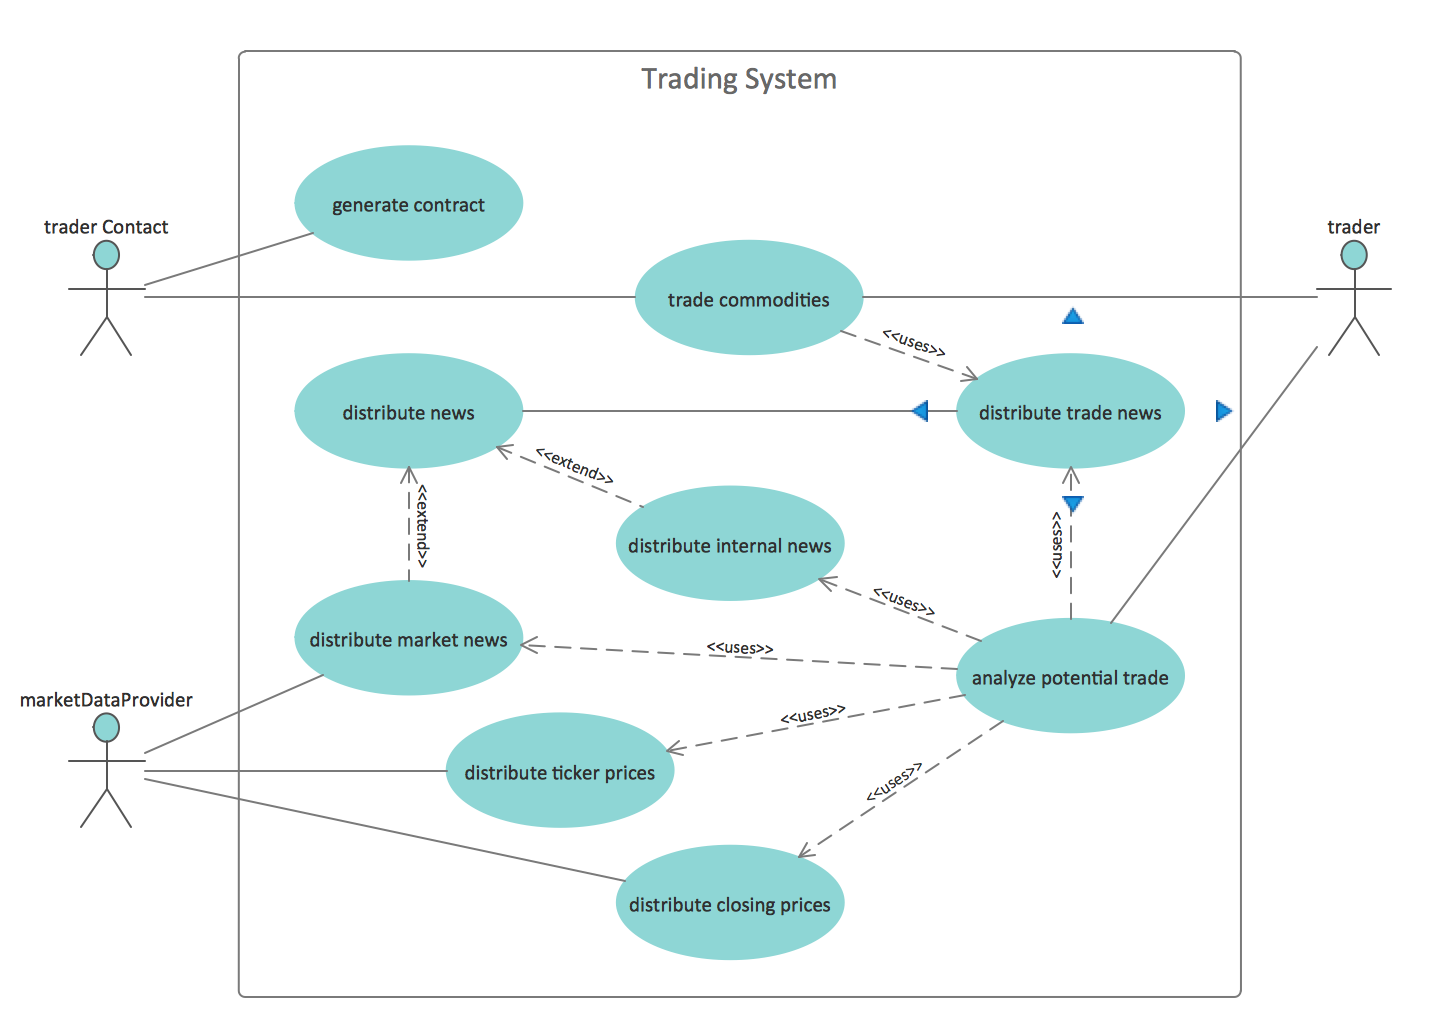 UML Use Case Diagrams. Trading system usage scenarios